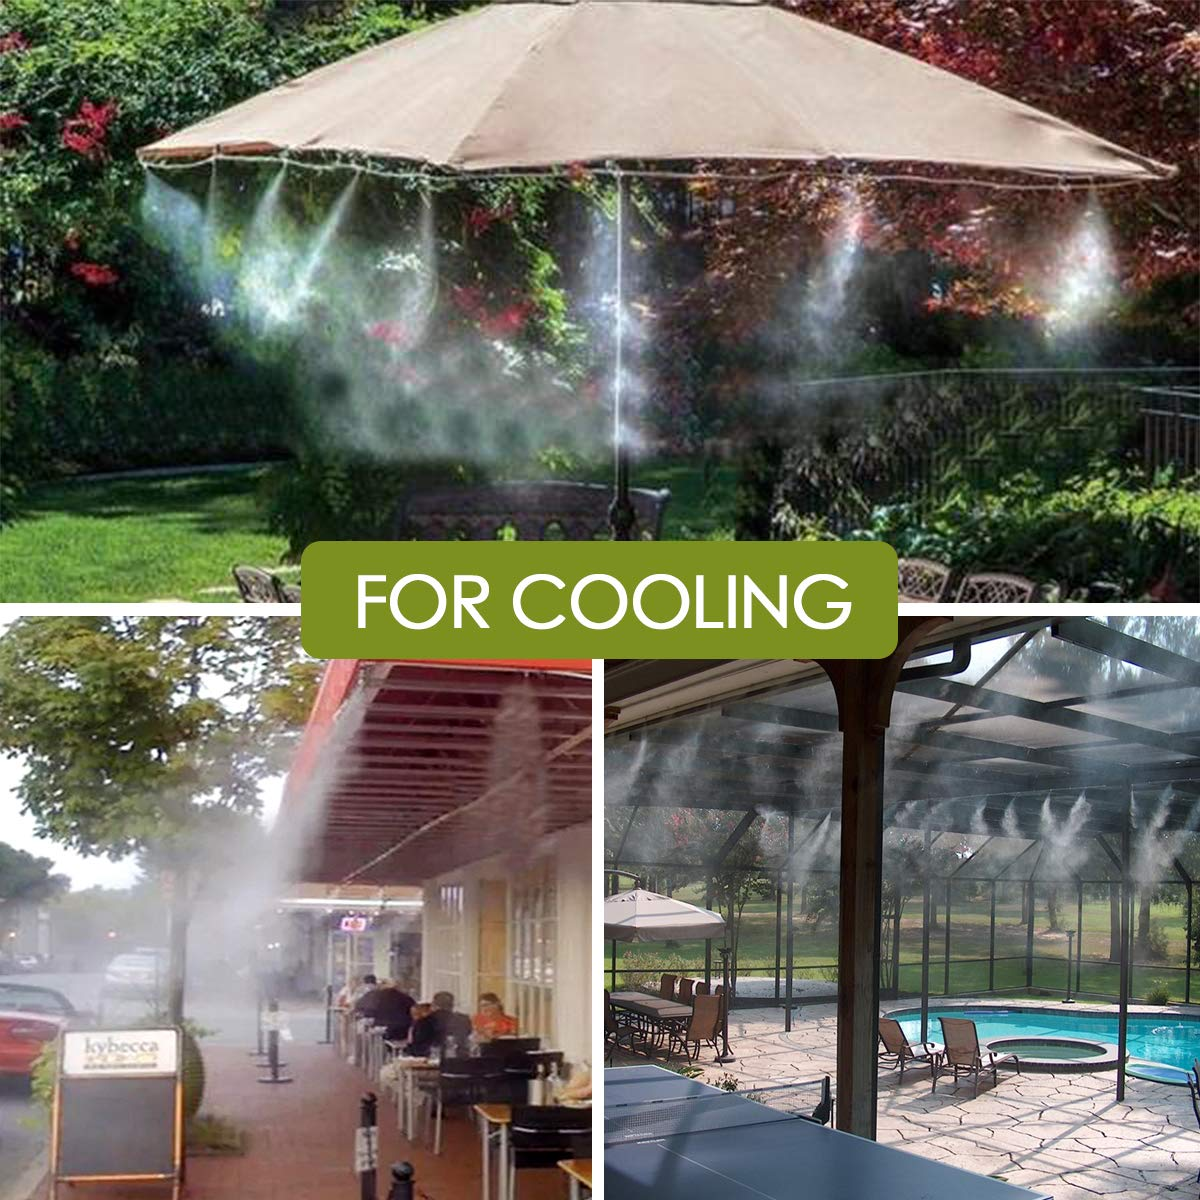 KING DO WAY Drip Automatic Irrigation Watering Tool Kits Gardening Accessories Dripping//Misting Nozzles /& Tee Connectors Misting Nozzles